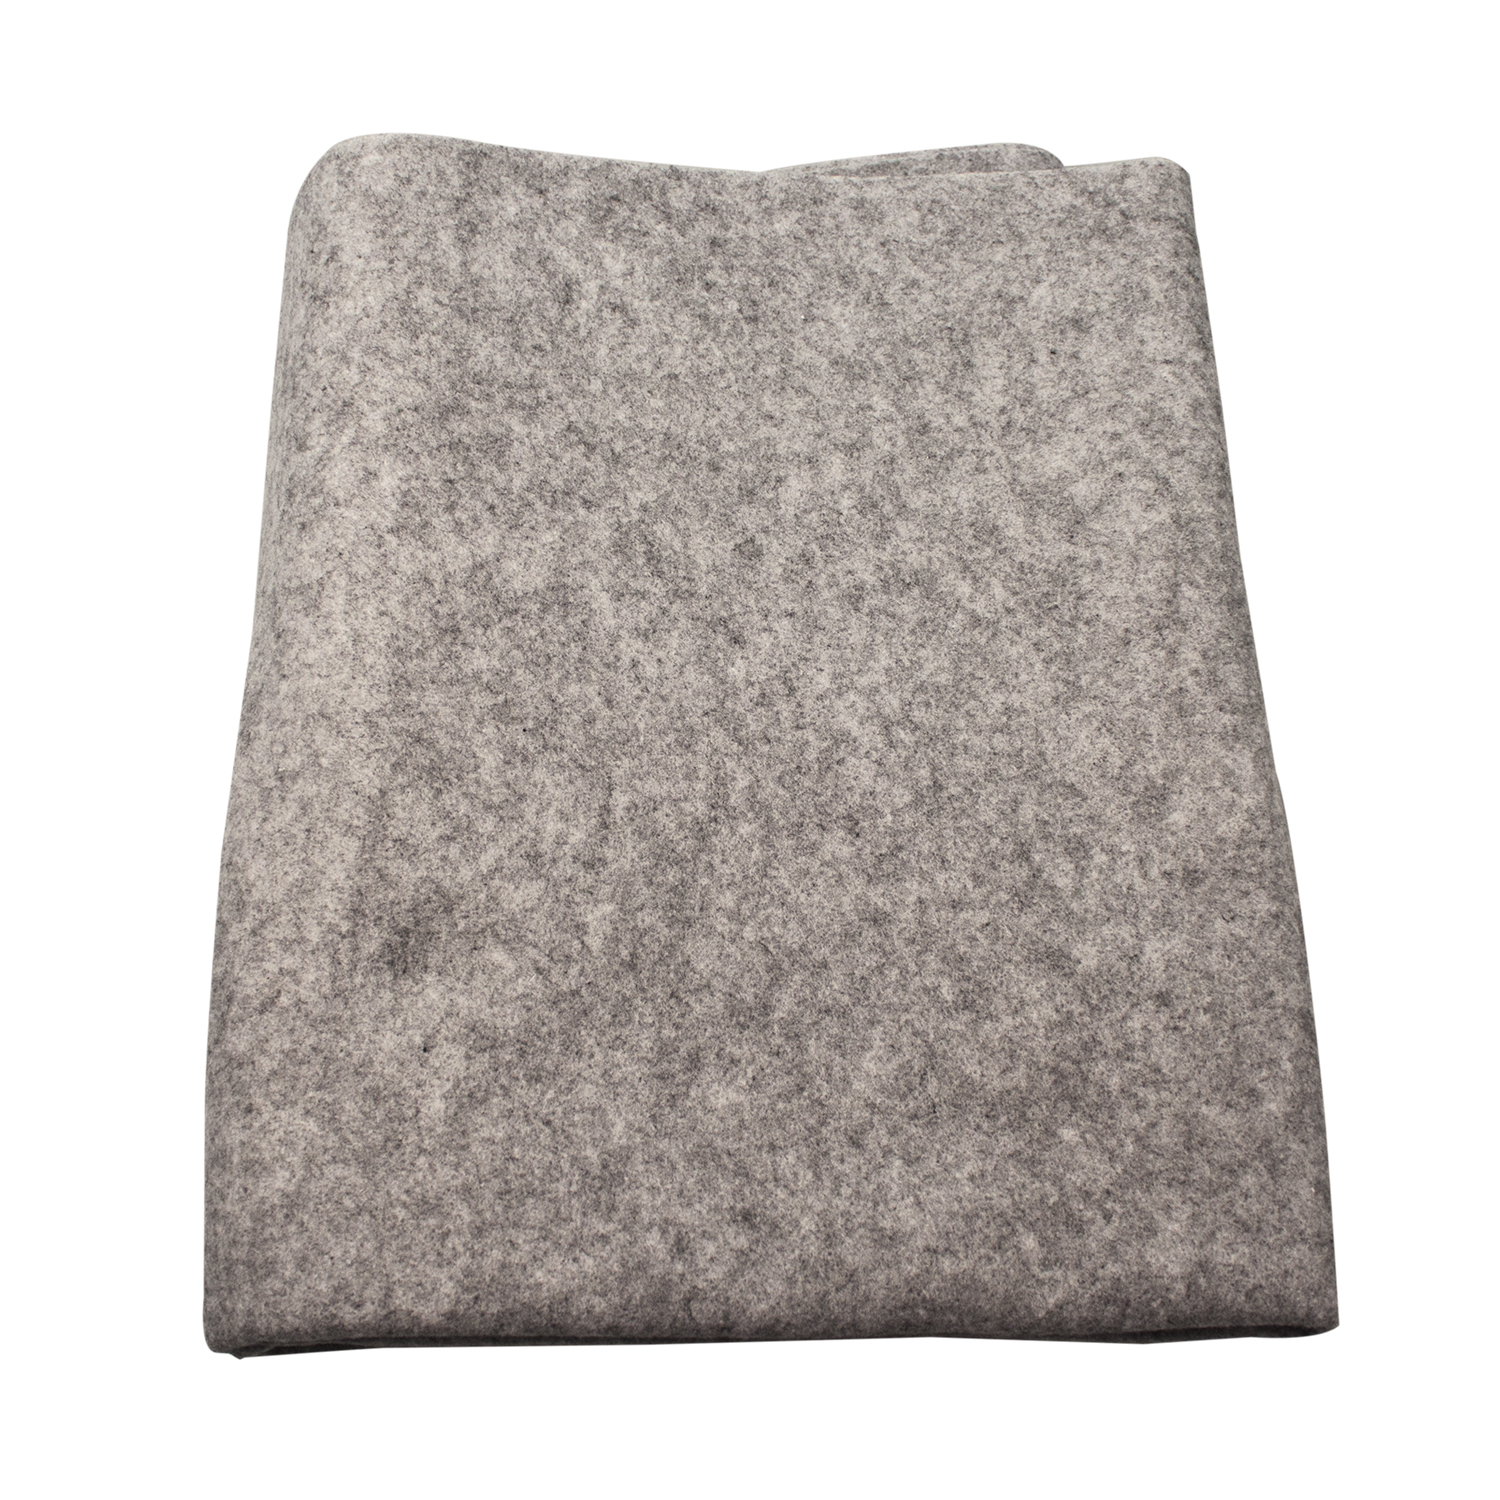 3540 Dynarex® Disposable Gray Polyester Paitient Blankets - 60` x 80`